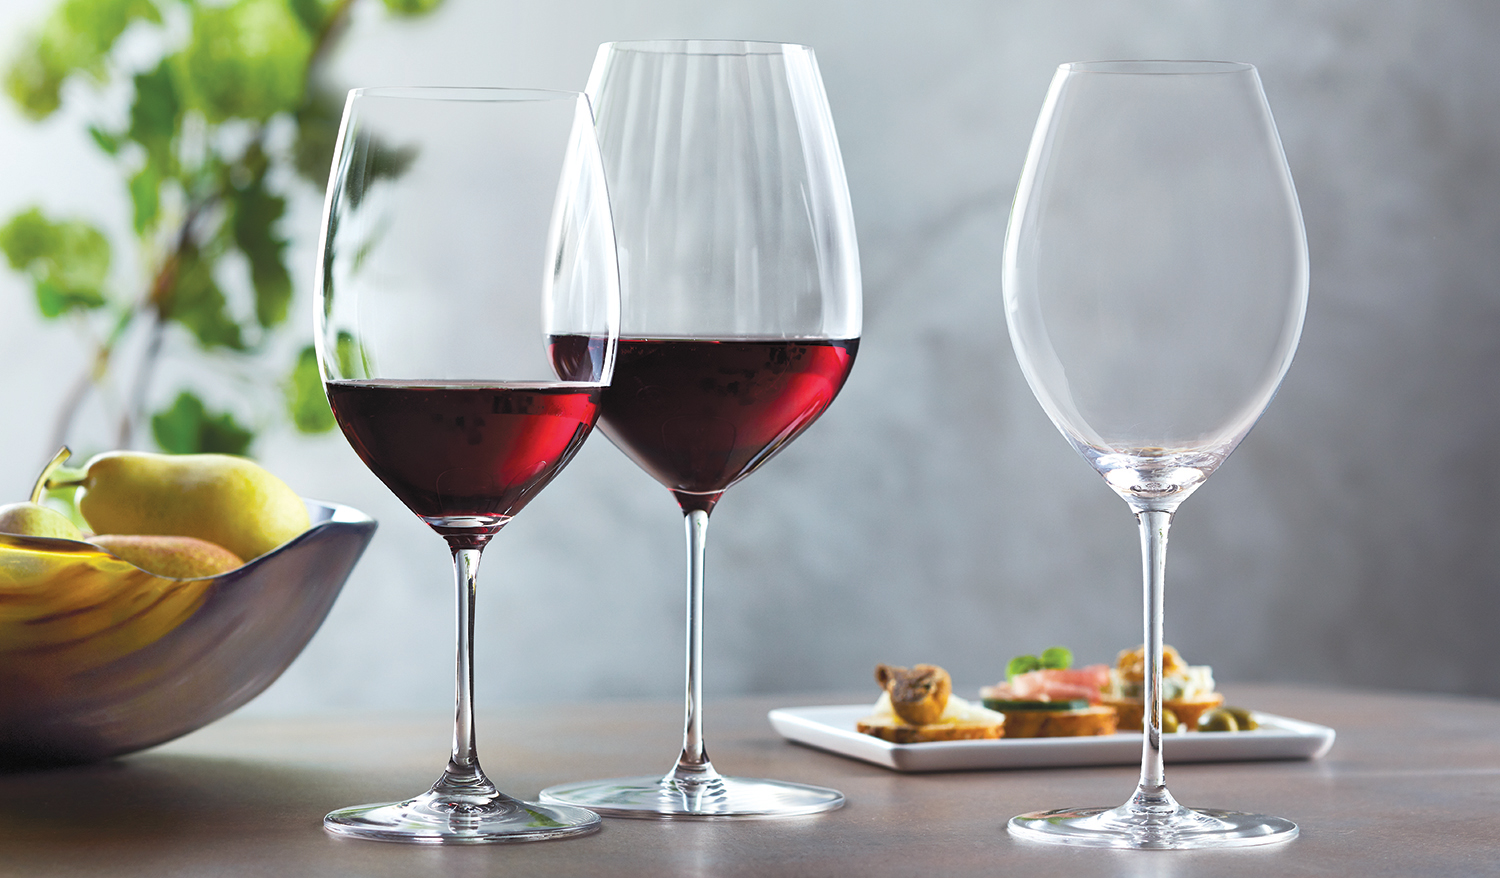 Riedel Wine Glasses offer optimal tasting performance.